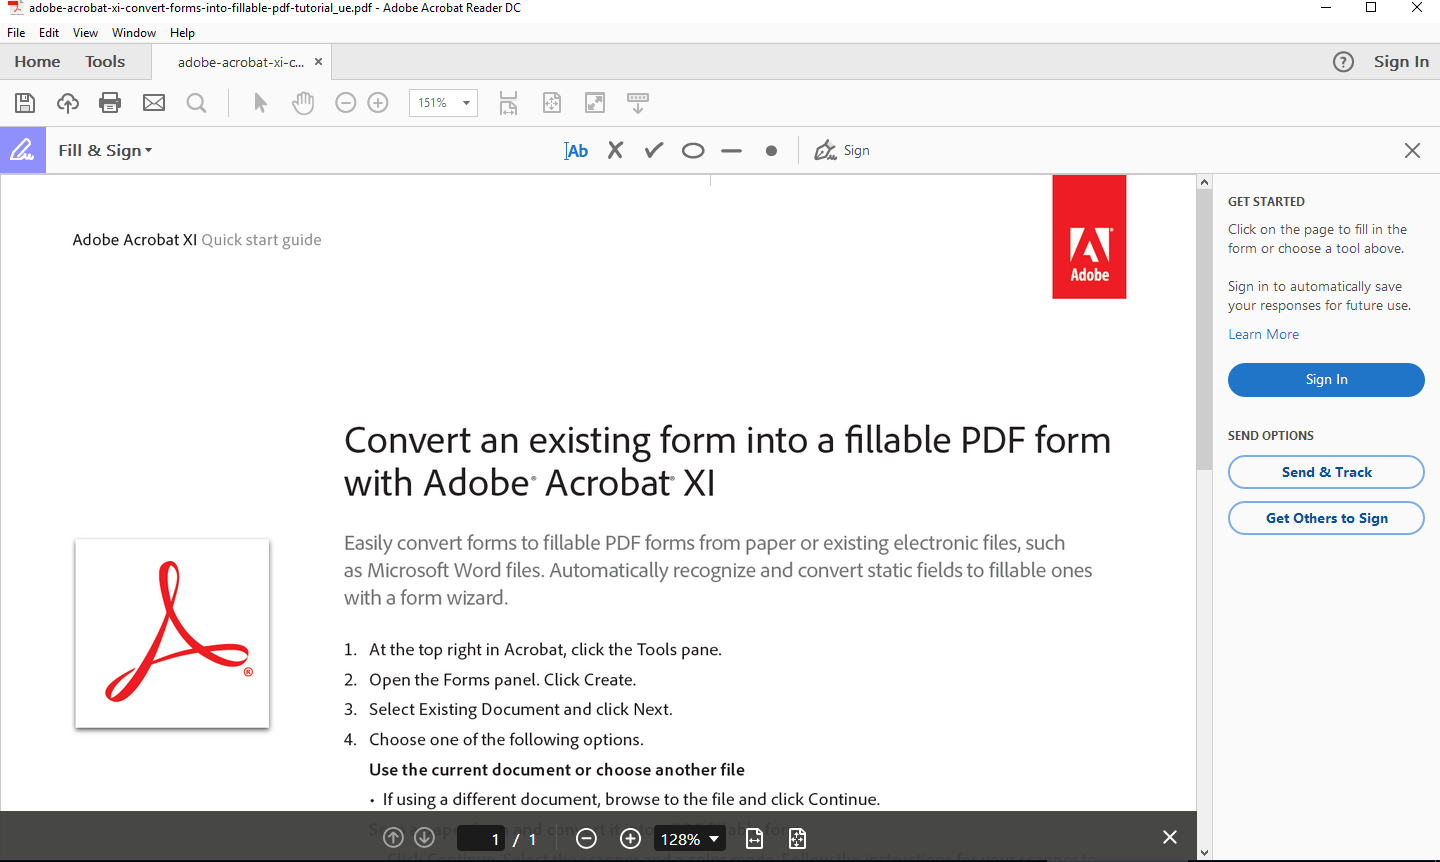 Adobe Acrobat Reader Pro DC 2018 document reading